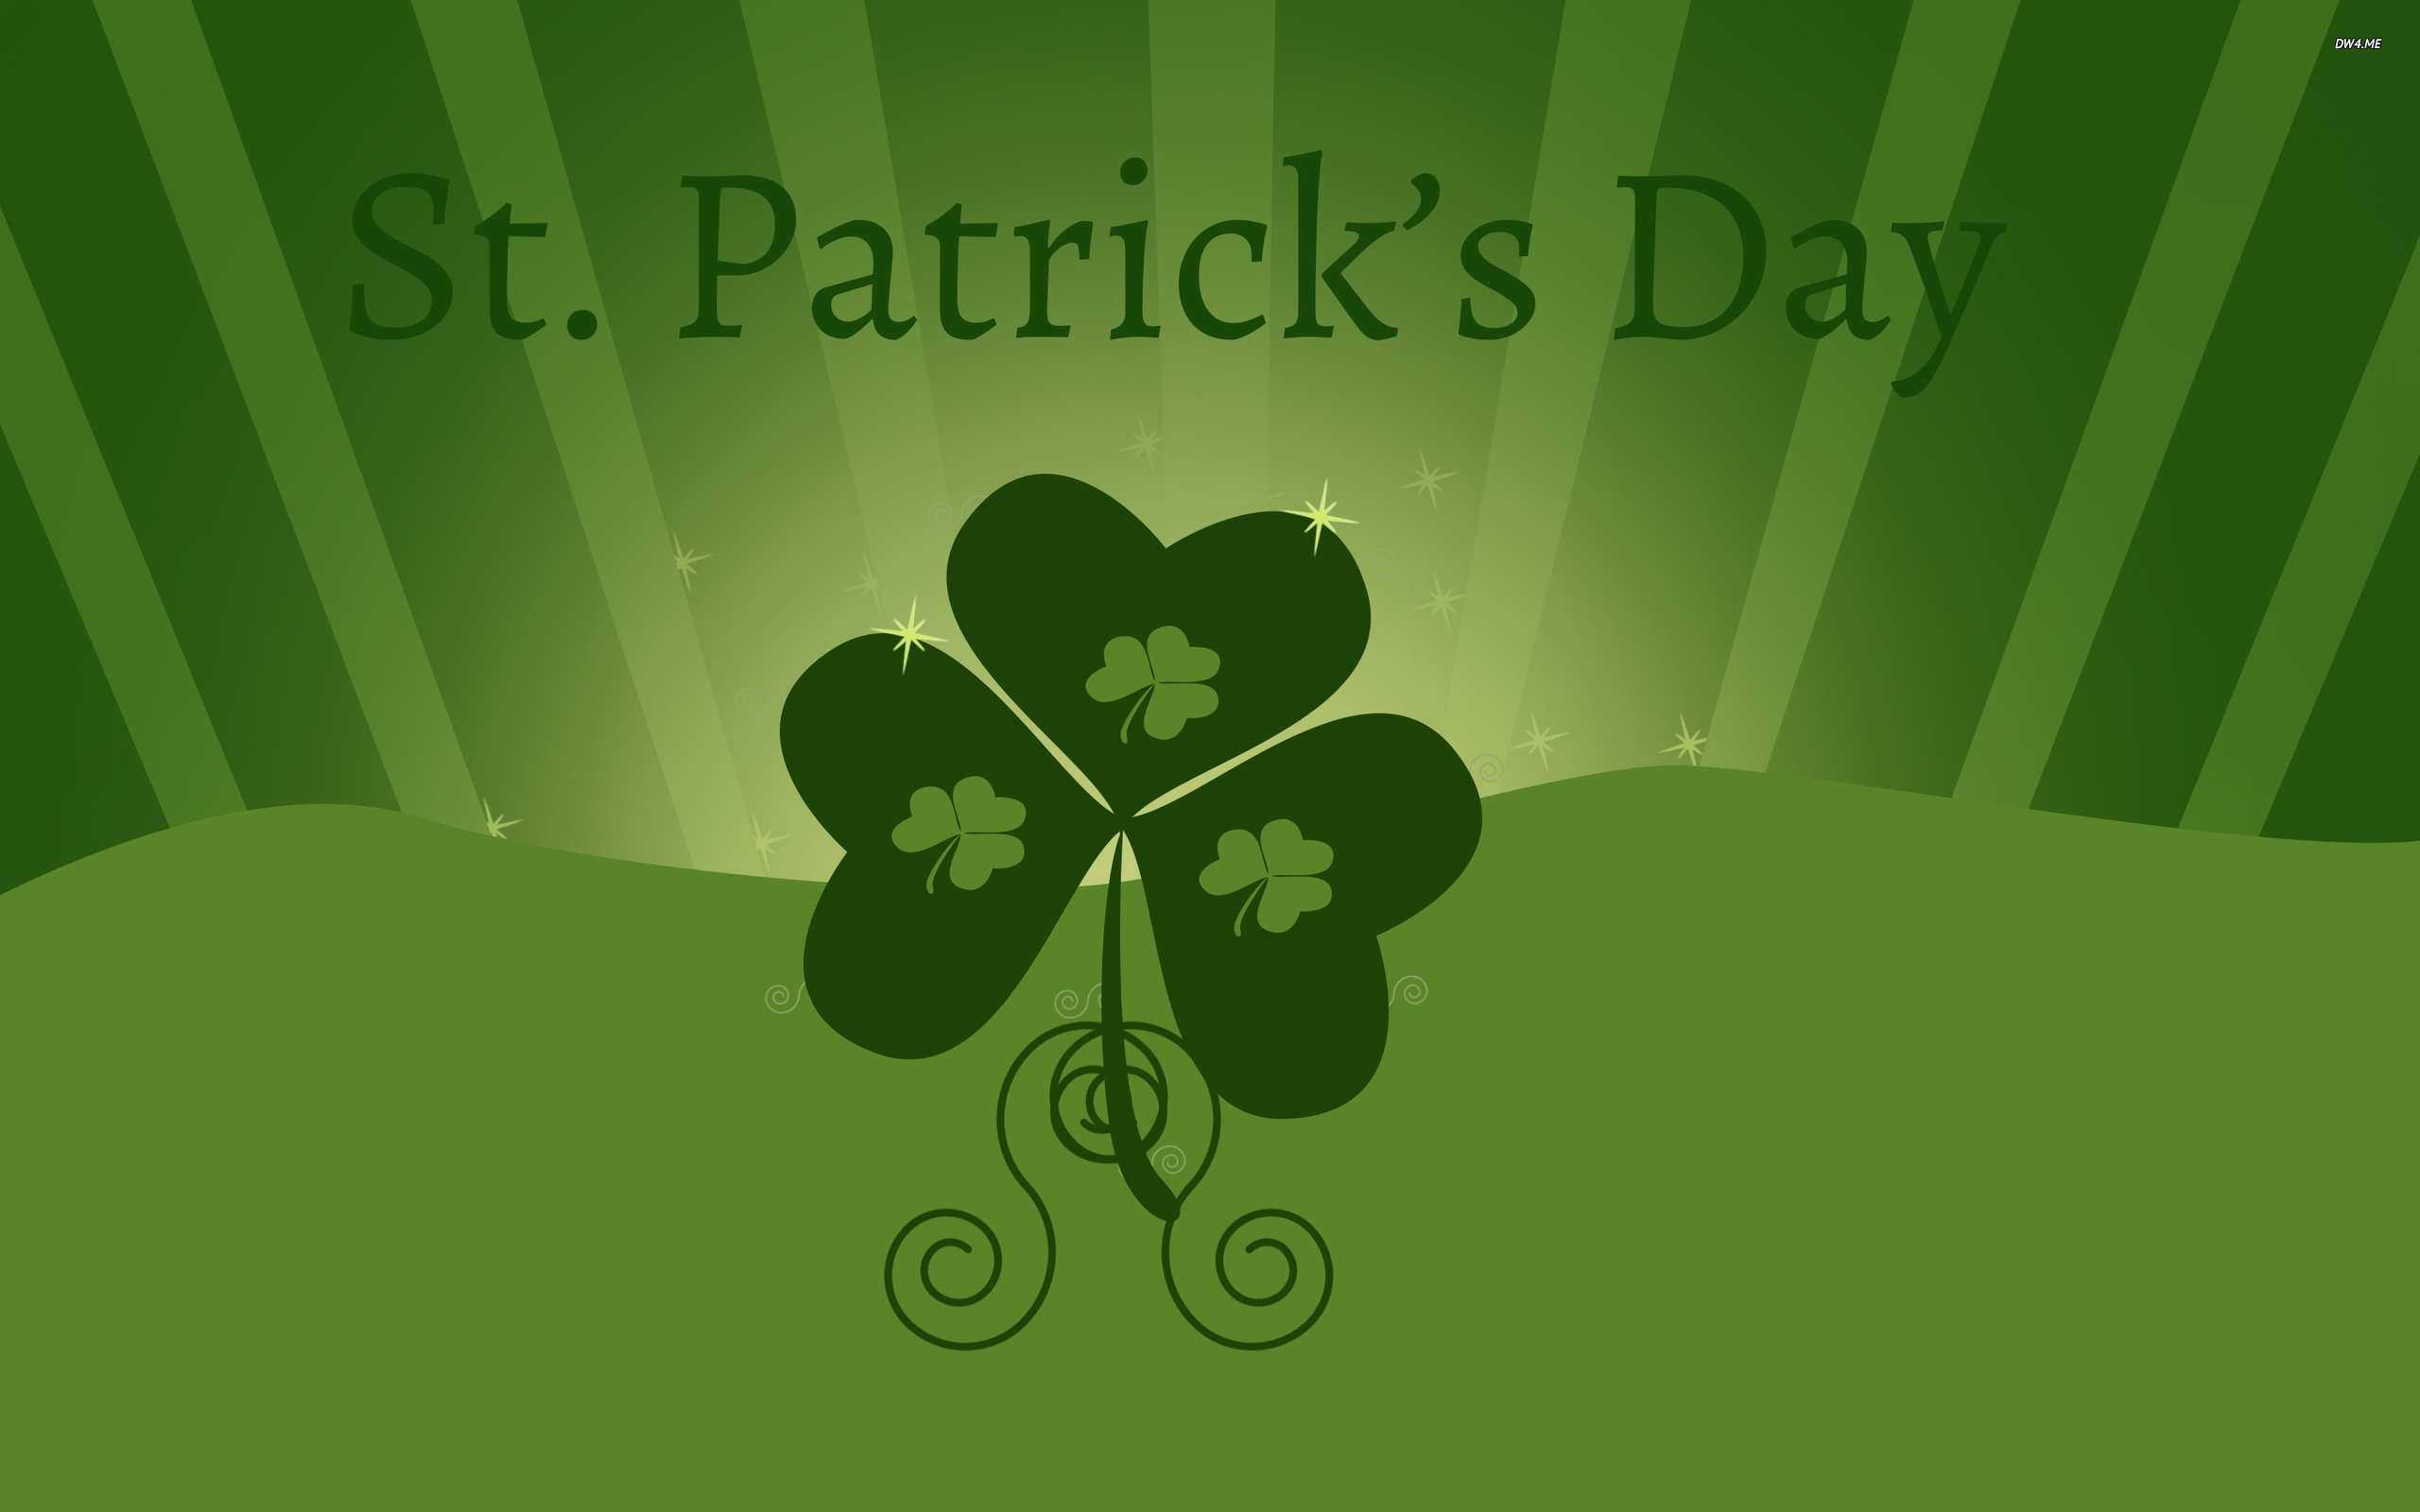 St Patricks Day wallpaper   Holiday wallpapers   2621 2560x1600